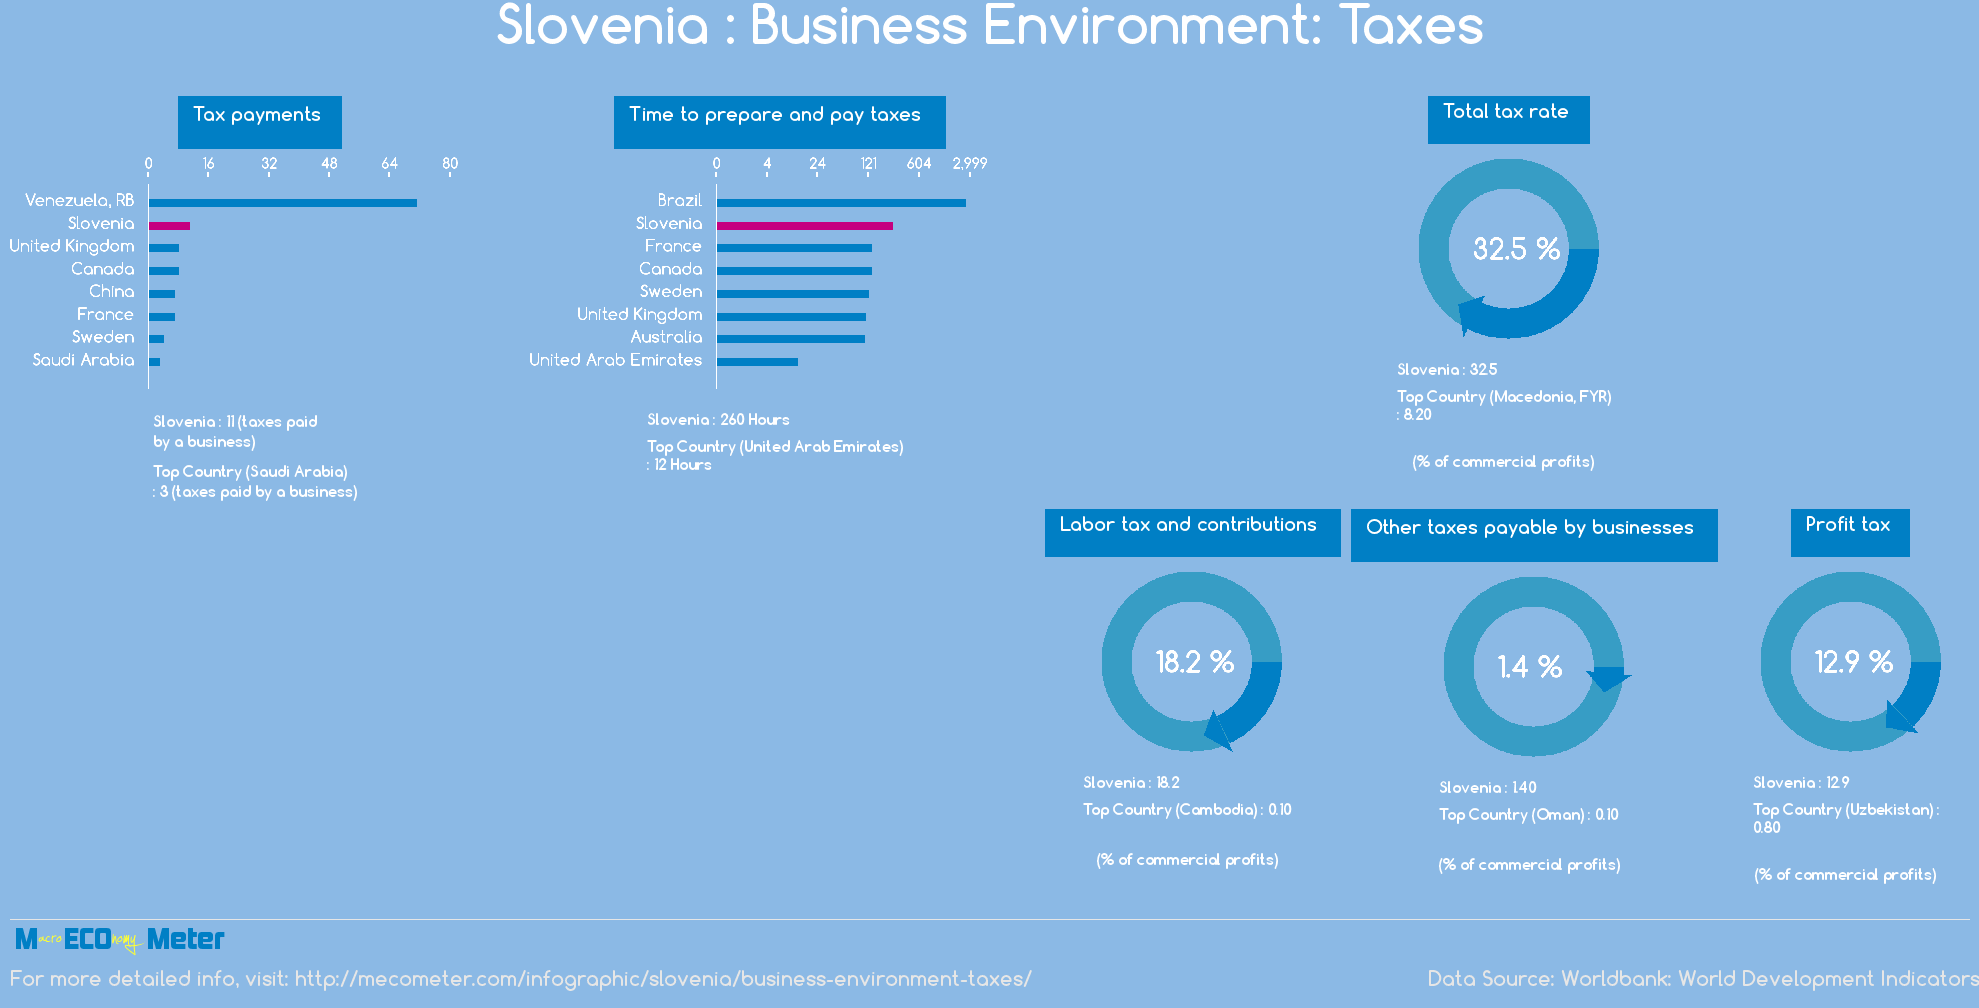 Slovenia : Business Environment: Taxes